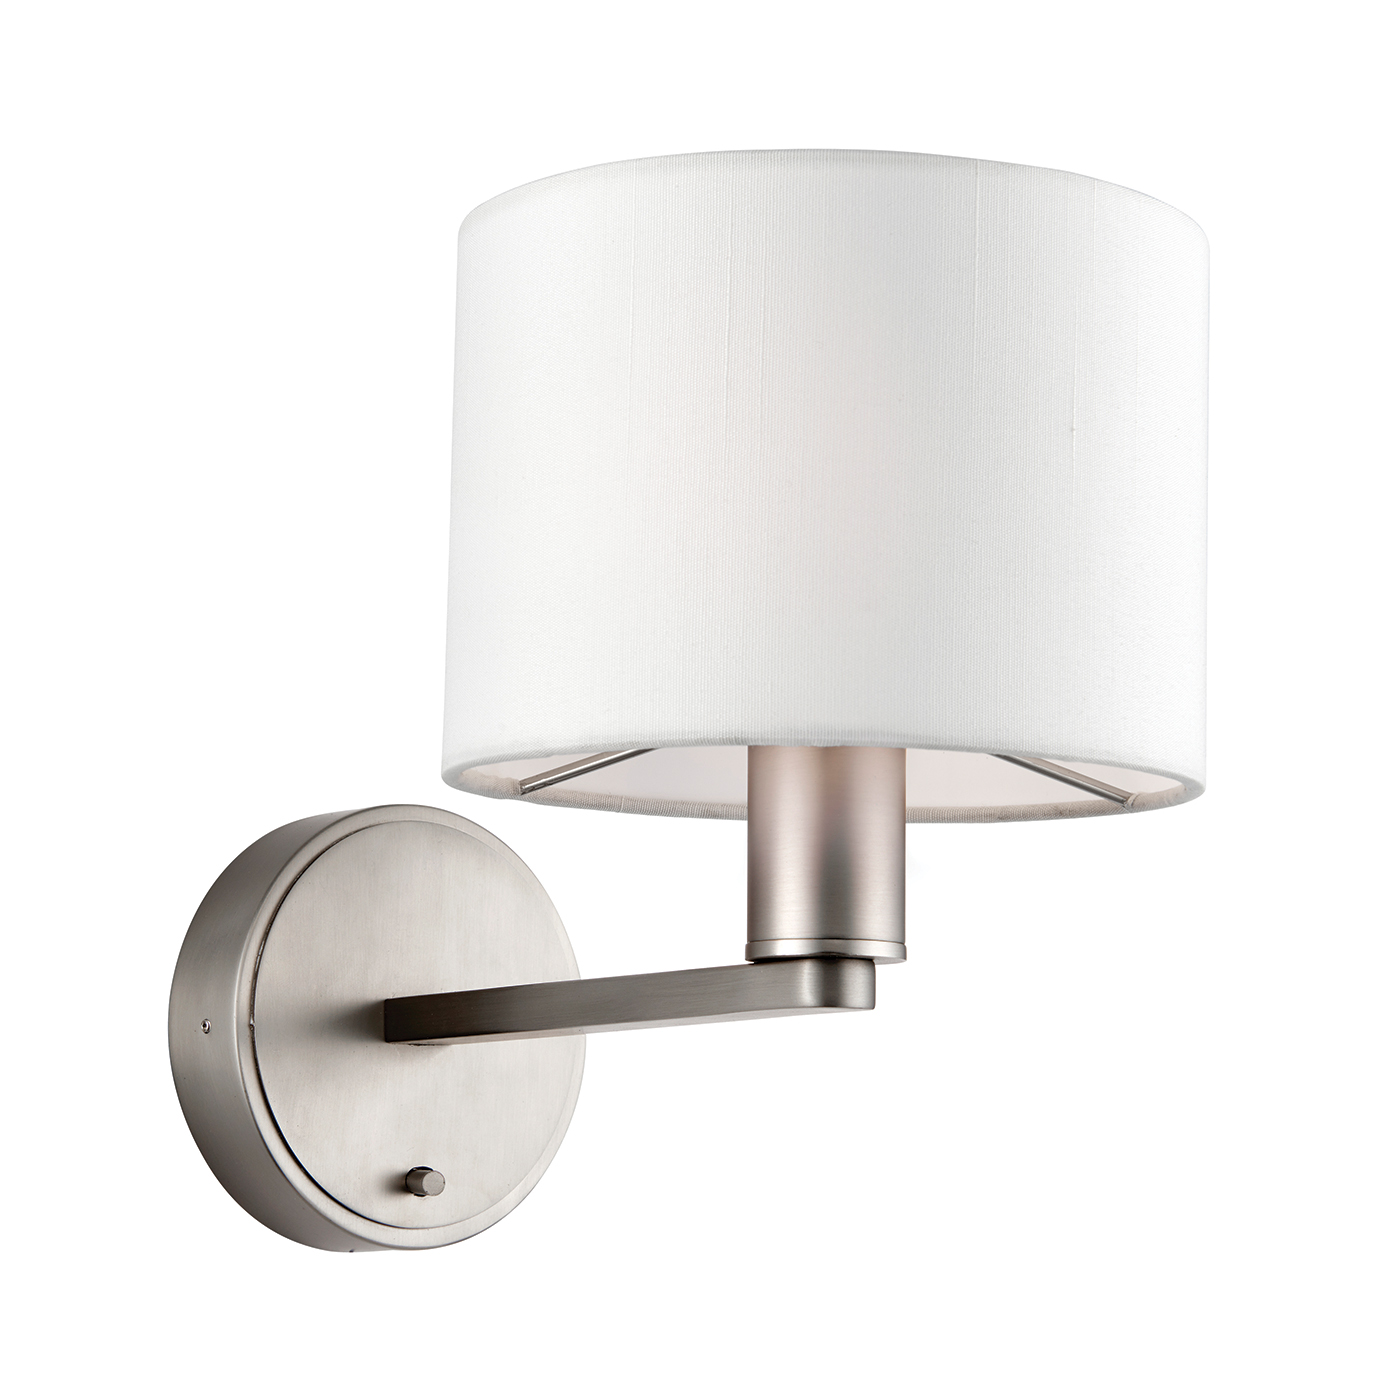 Endon 61608 Daley Wall Light 40W MN/Whi